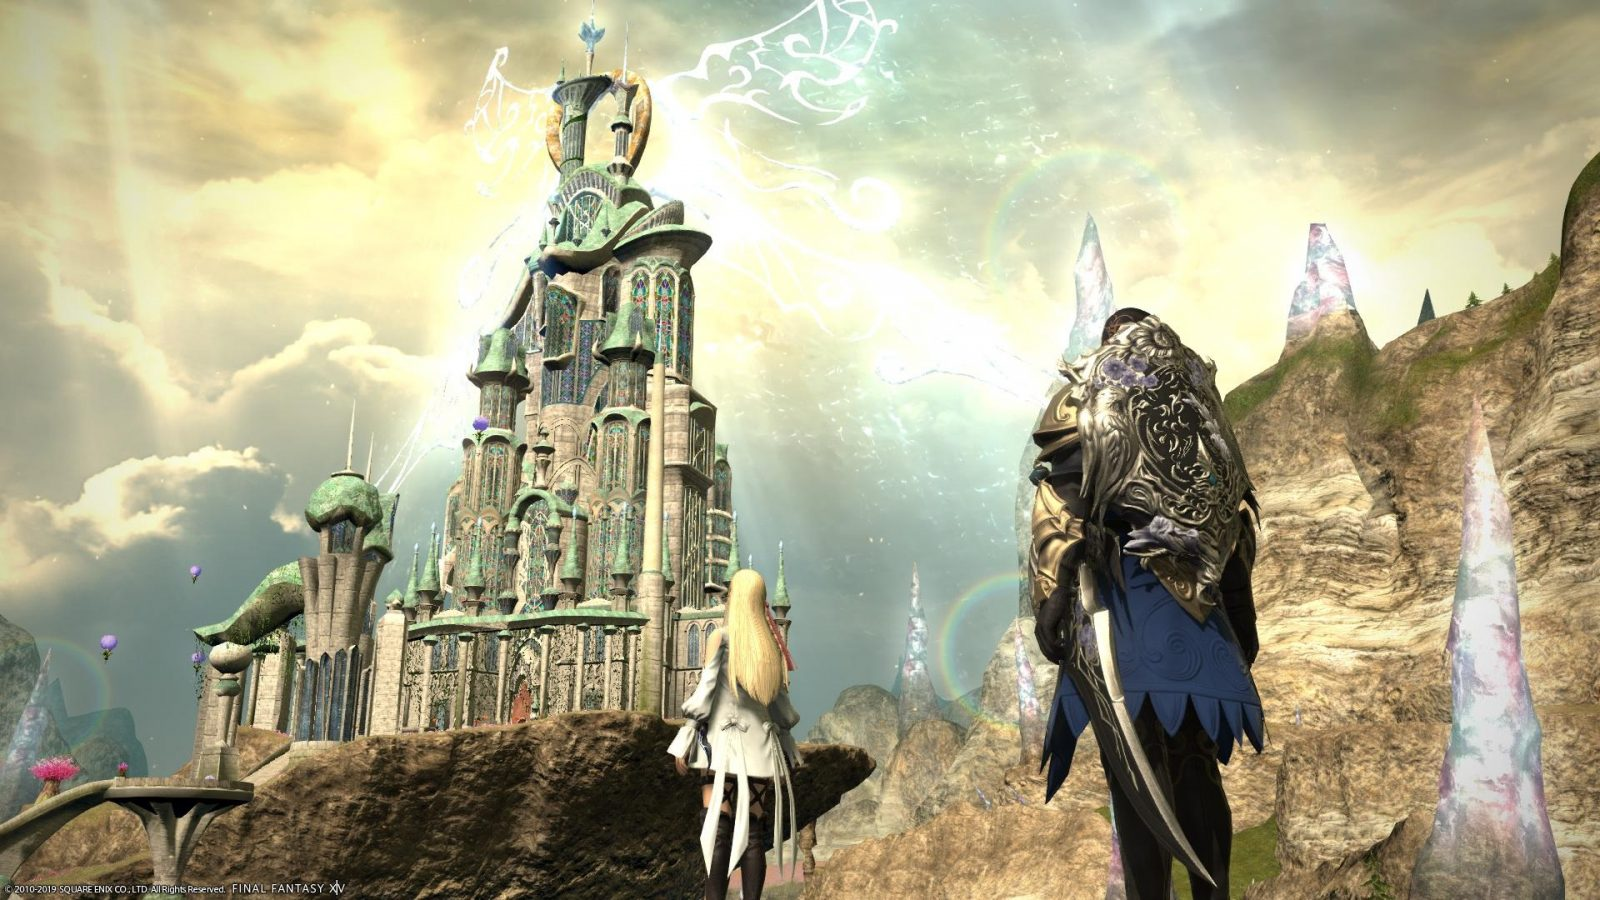 Final Fantasy 14 May Have Just Been Confirmed for PS5